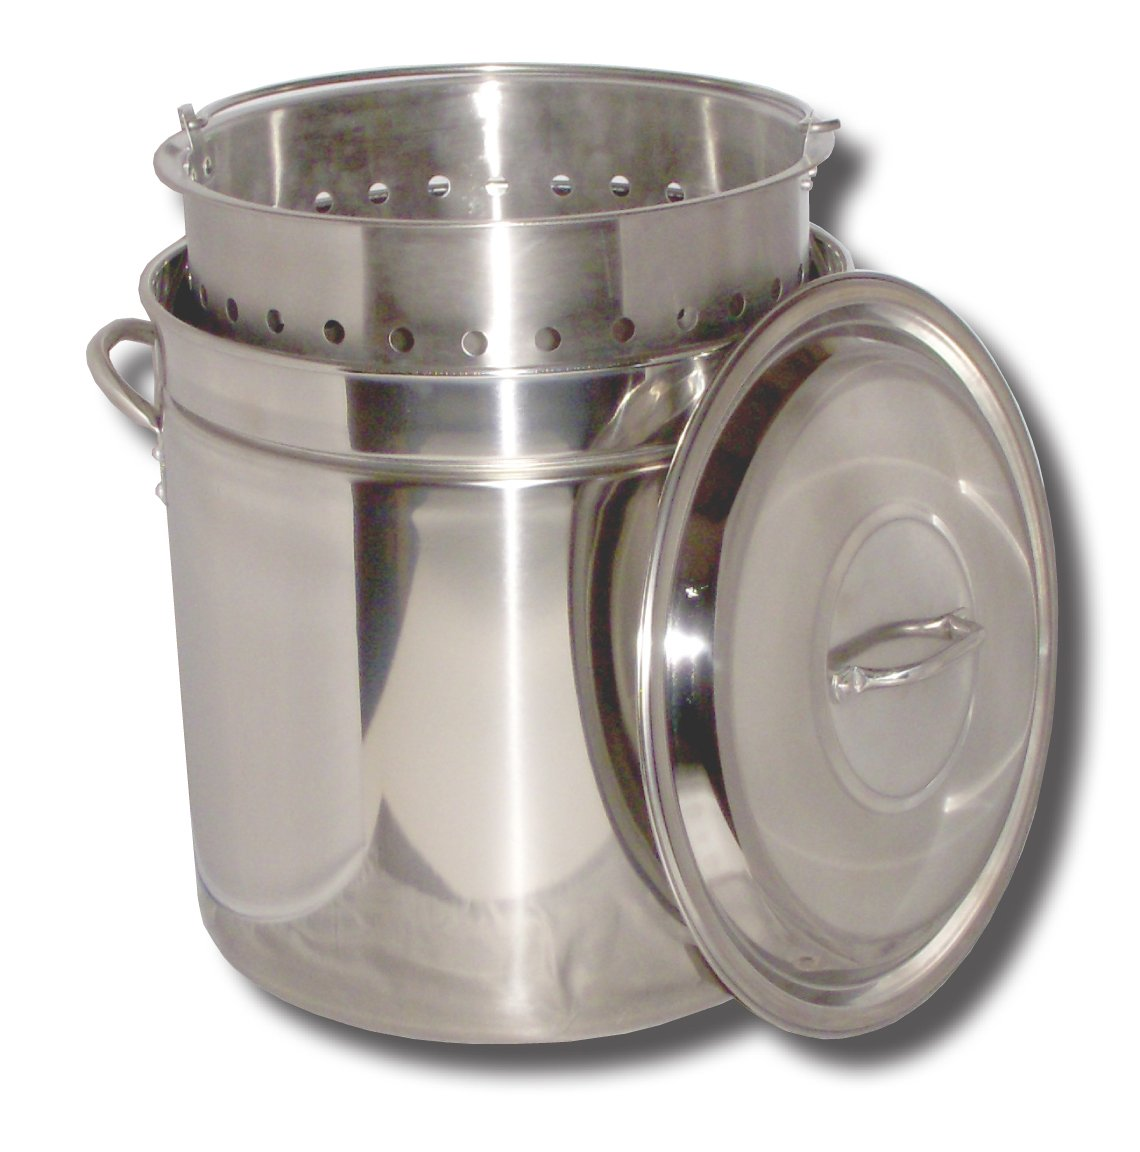 King Kooker KK36SR Ridged Stainless Steel Pot, 36-Quart by King Kooker